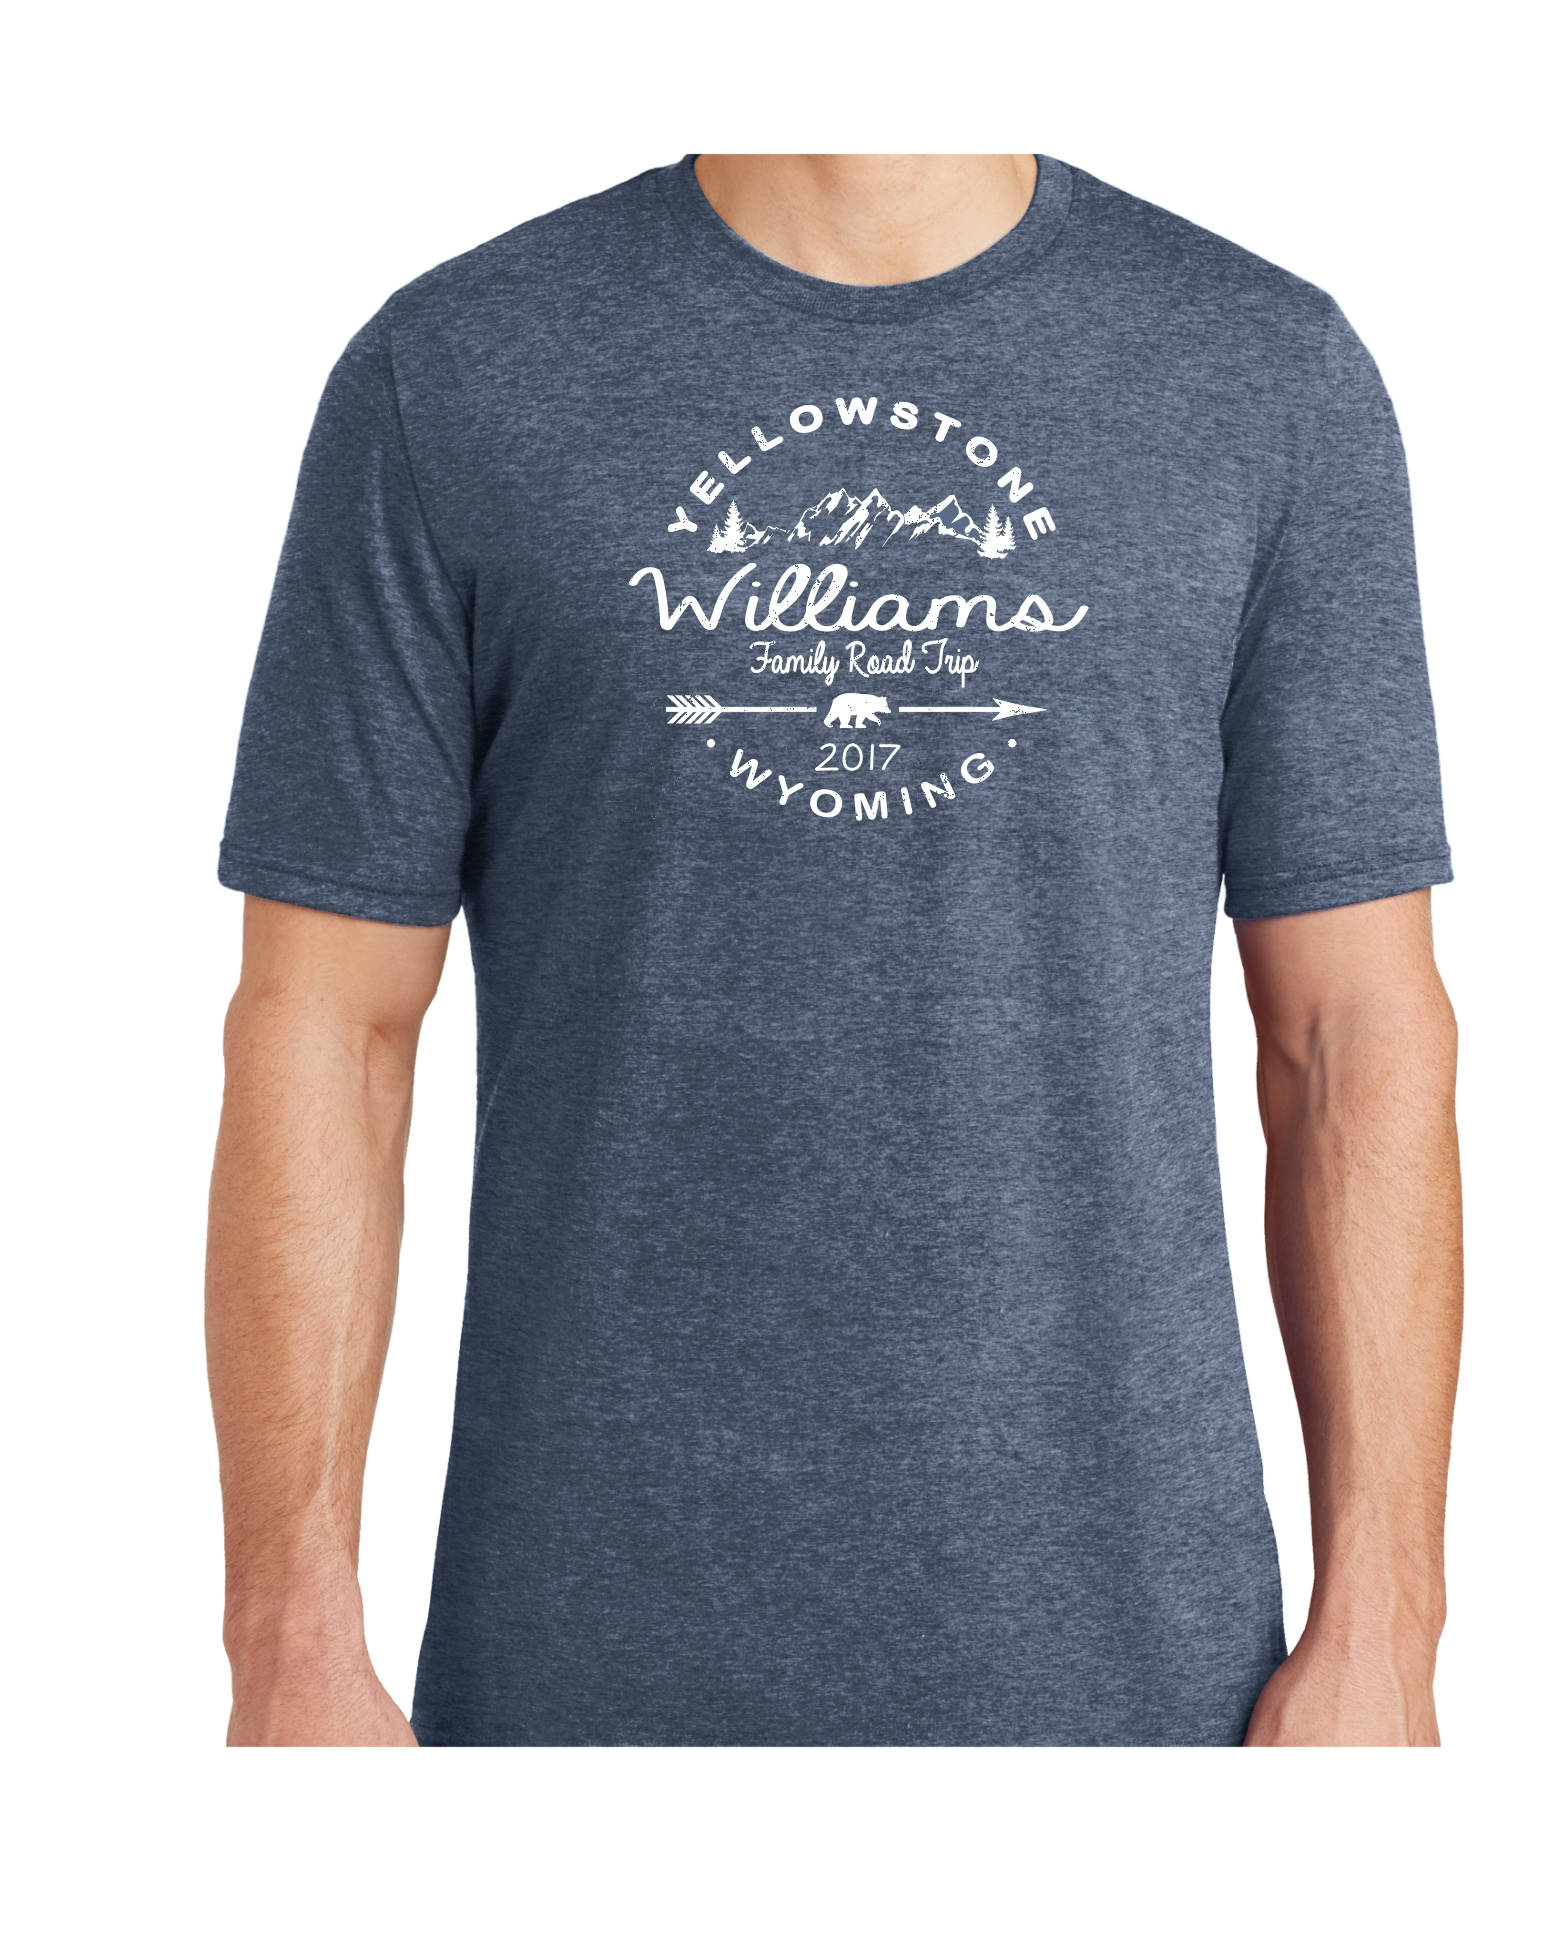 Custom shirts for parties and reunions or just because